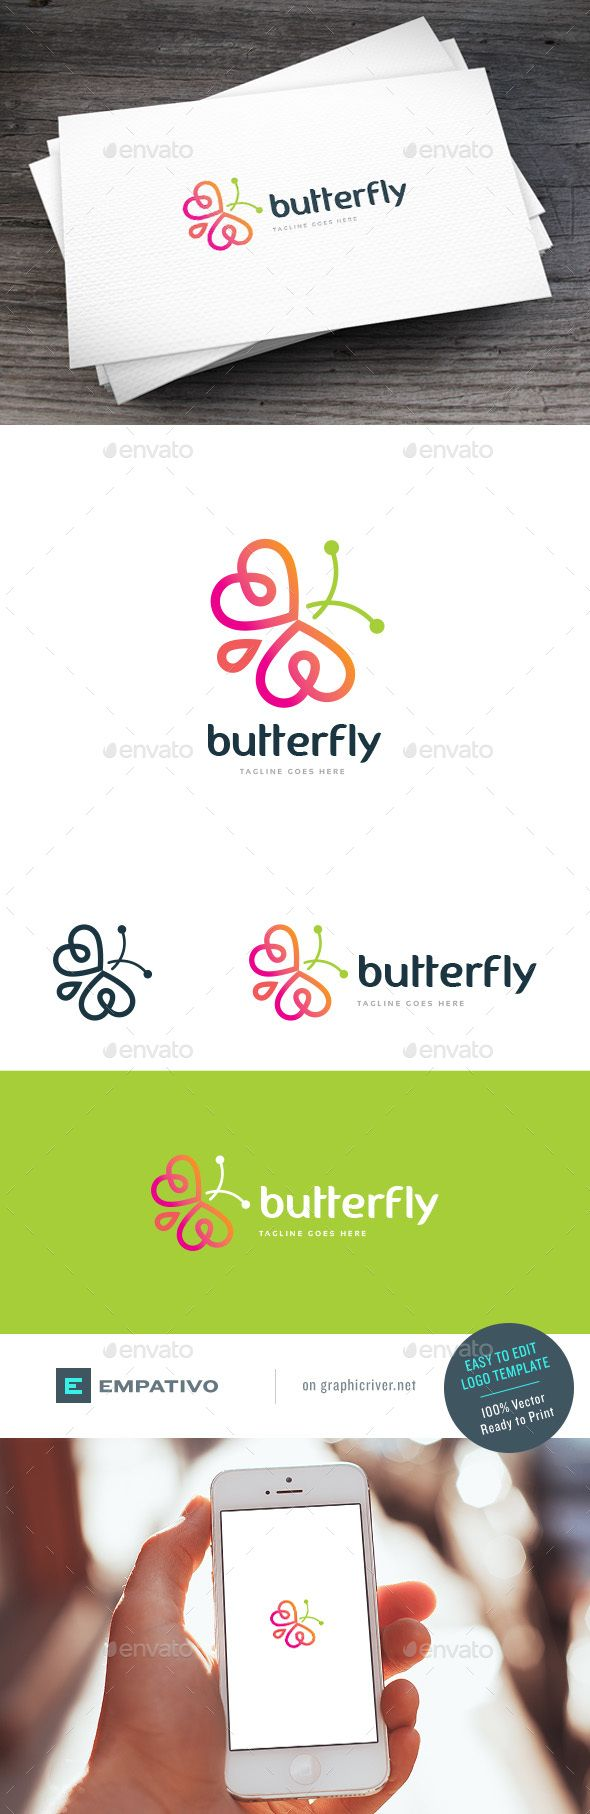 Butterfly Logo Template — Vector EPS #ecology #decoration • Available here → https://graphicriver.net/item/butterfly-logo-template/15678621?ref=pxcr